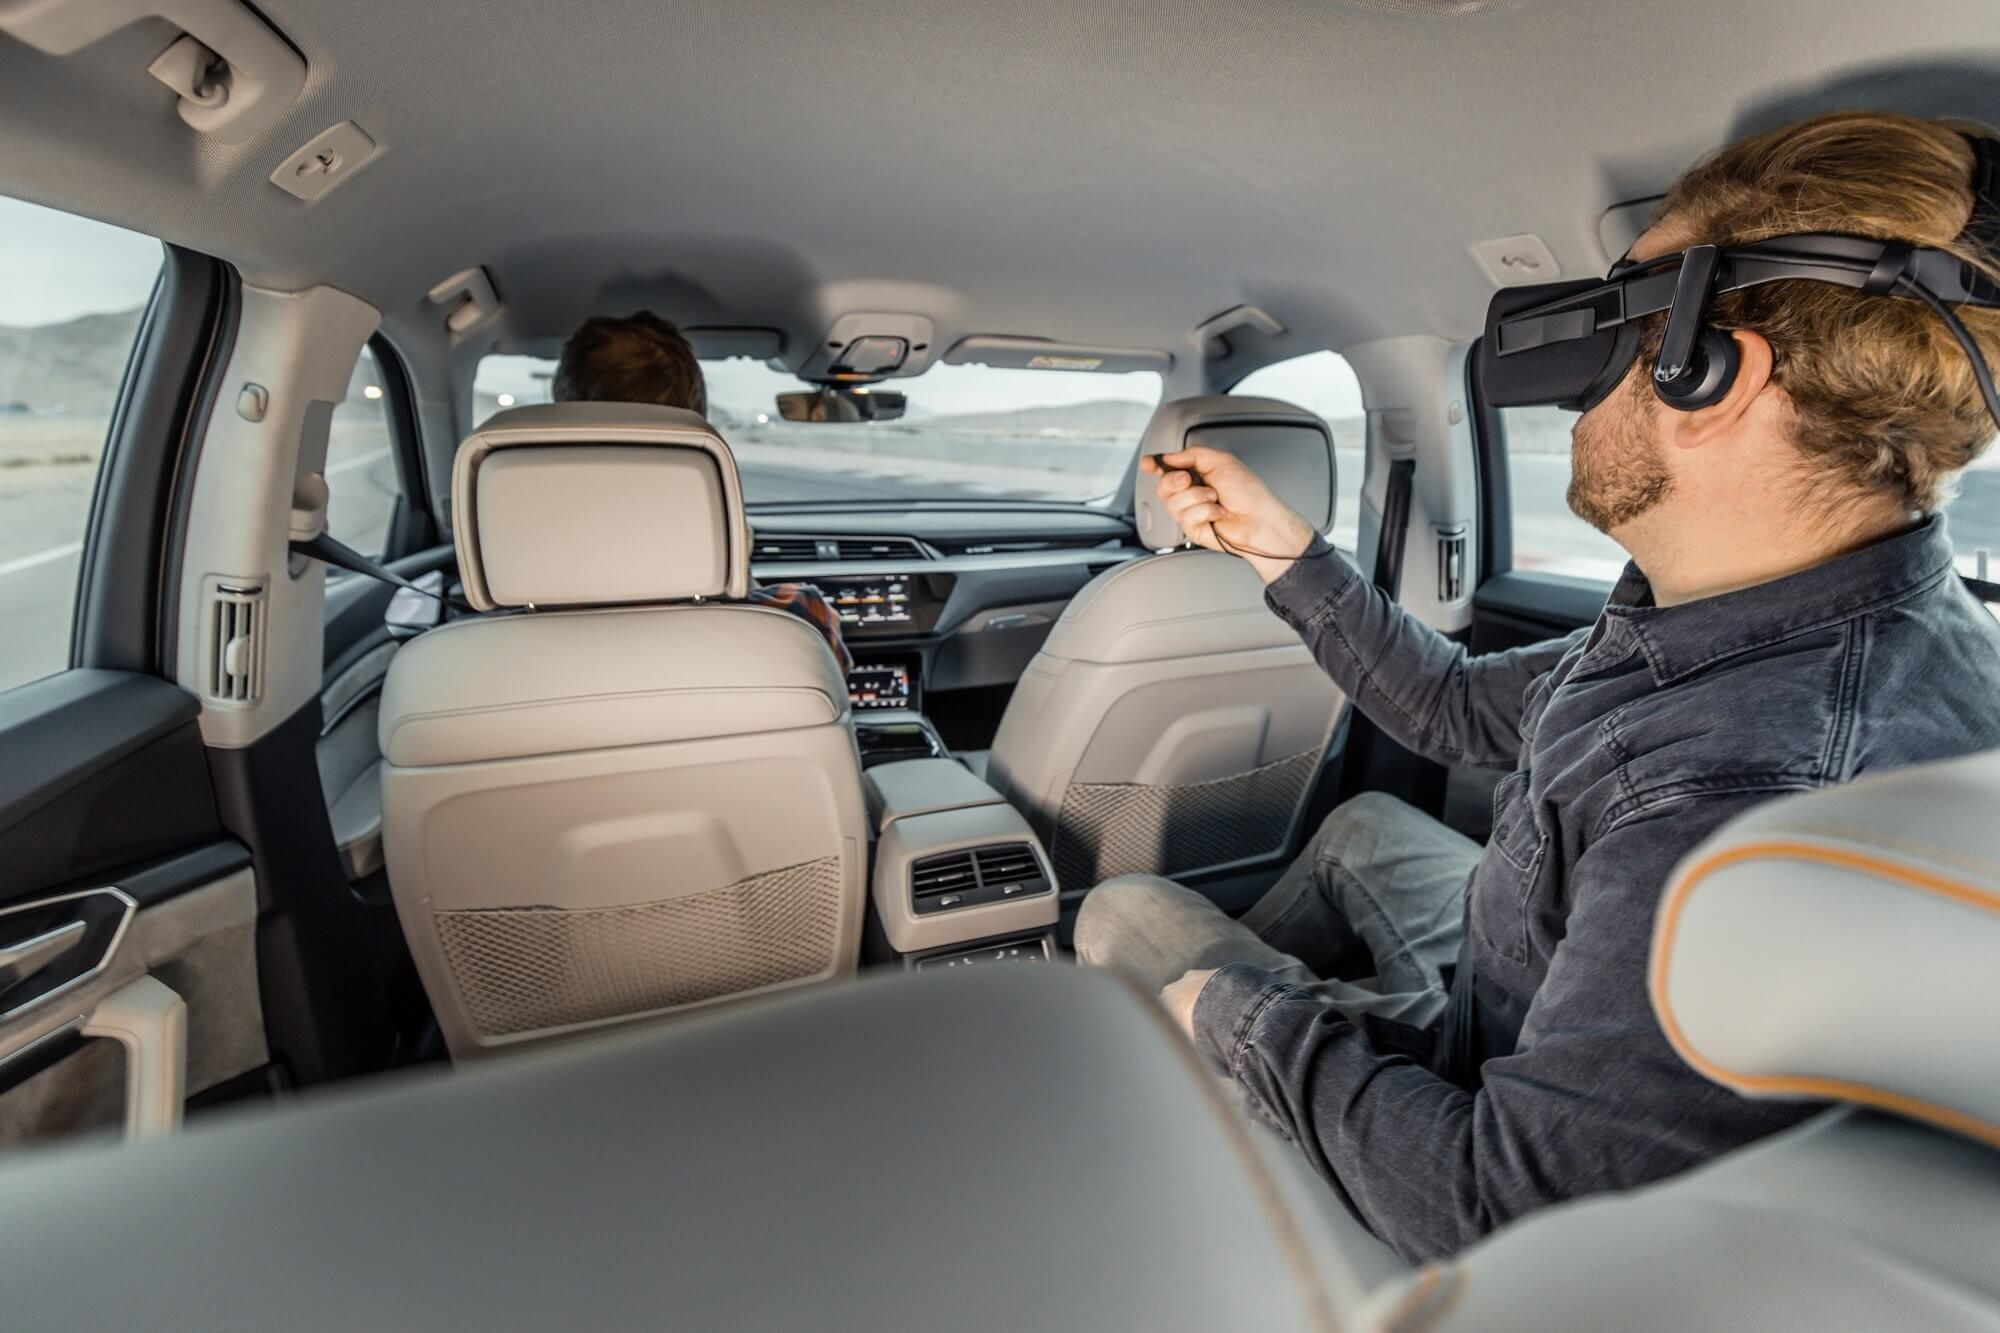 Audi's Virtual Reality Experience Moves With The Car